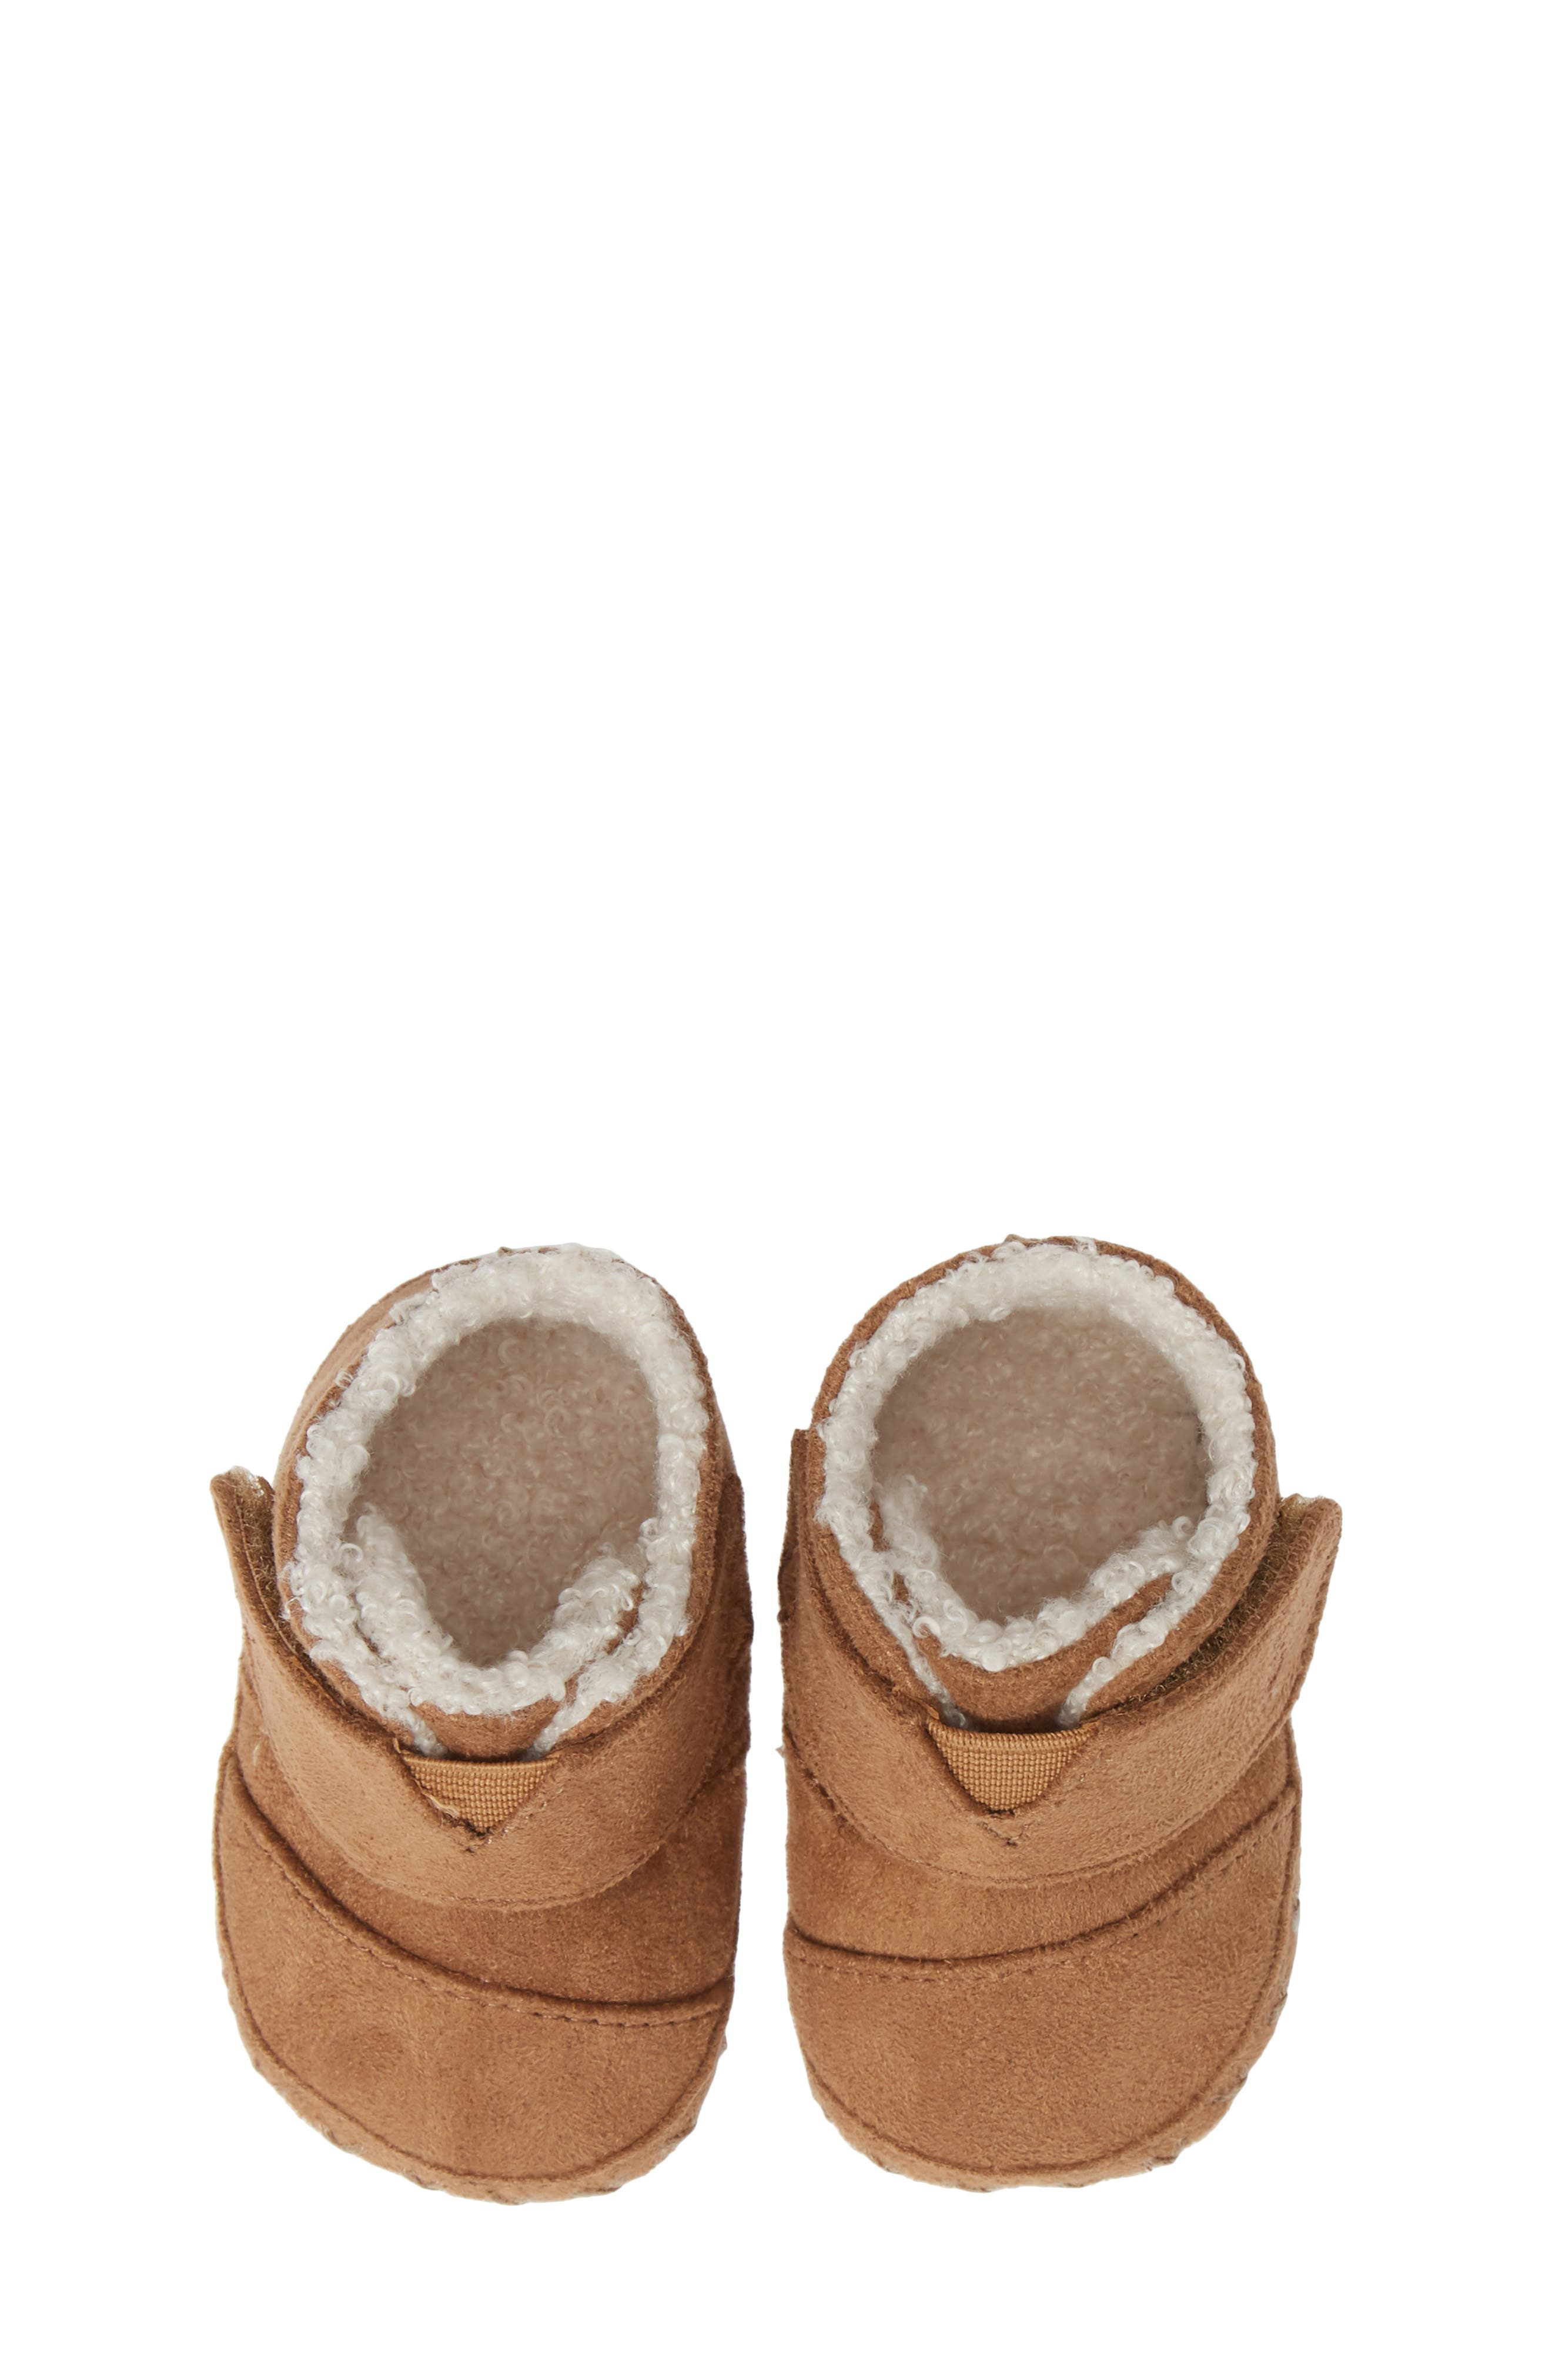 Tiny Cuna Faux Fur Crib Bootie,                         Main,                         color, TOFFEE MICROFIBER